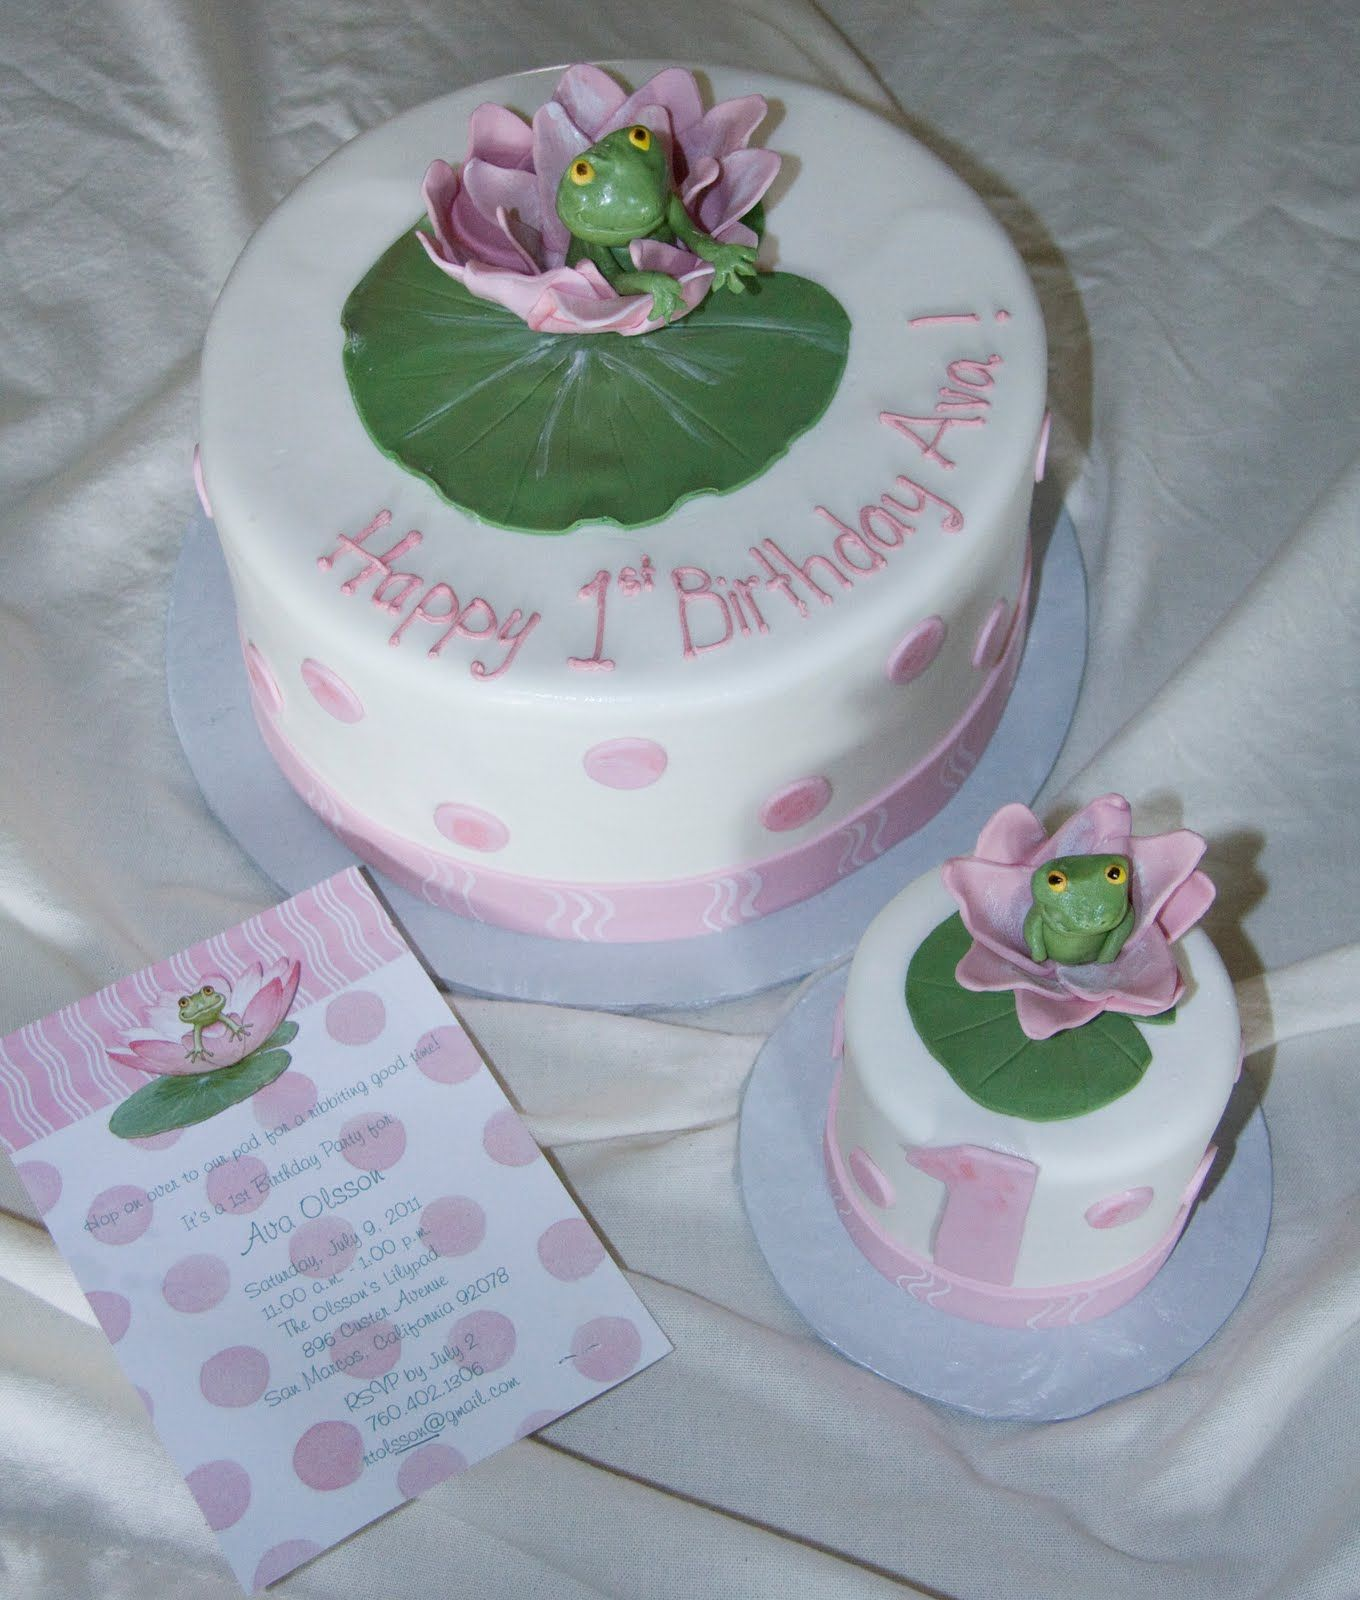 Lily pad cake with a cute smash cake for baby Lillians 1st